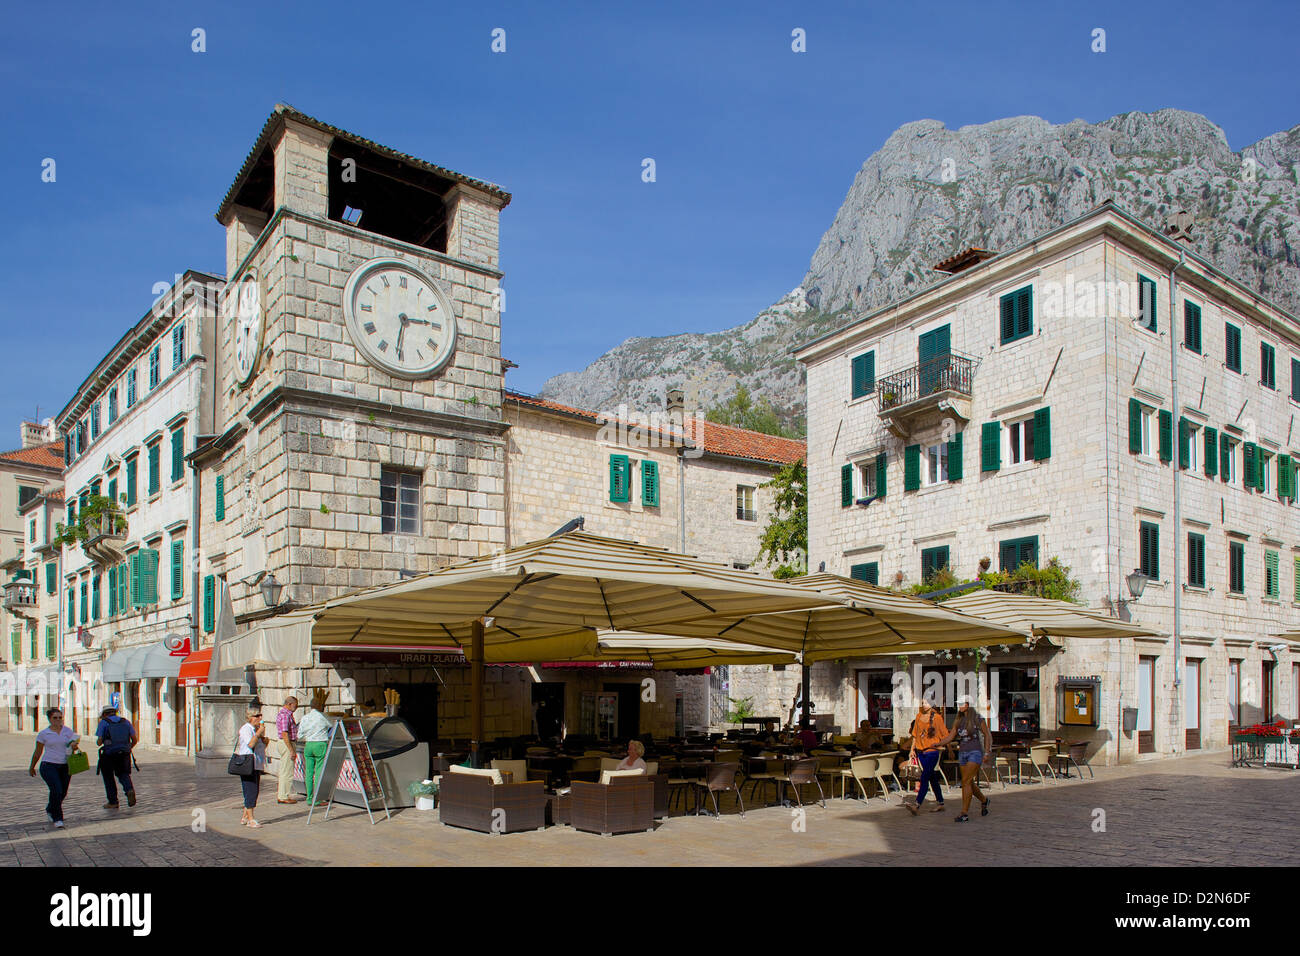 Old Town Clock Tower, Old Town, UNESCO World Heritage Site, Kotor, Montenegro, Europe - Stock Image